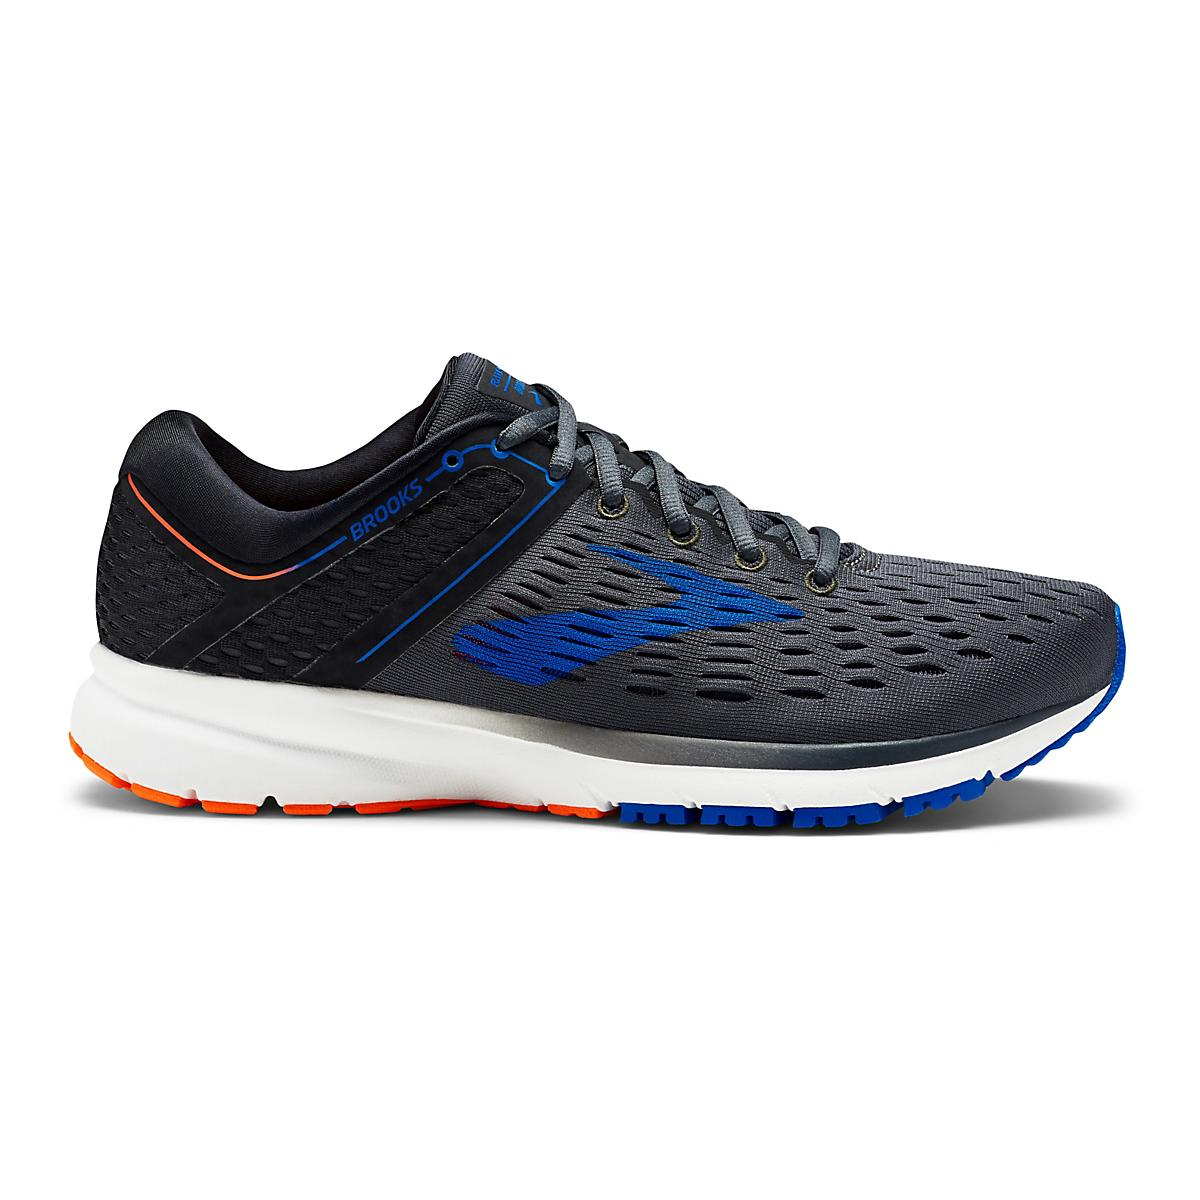 dddd9cbc84d Mens Brooks Ravenna 9 Running Shoe at Road Runner Sports